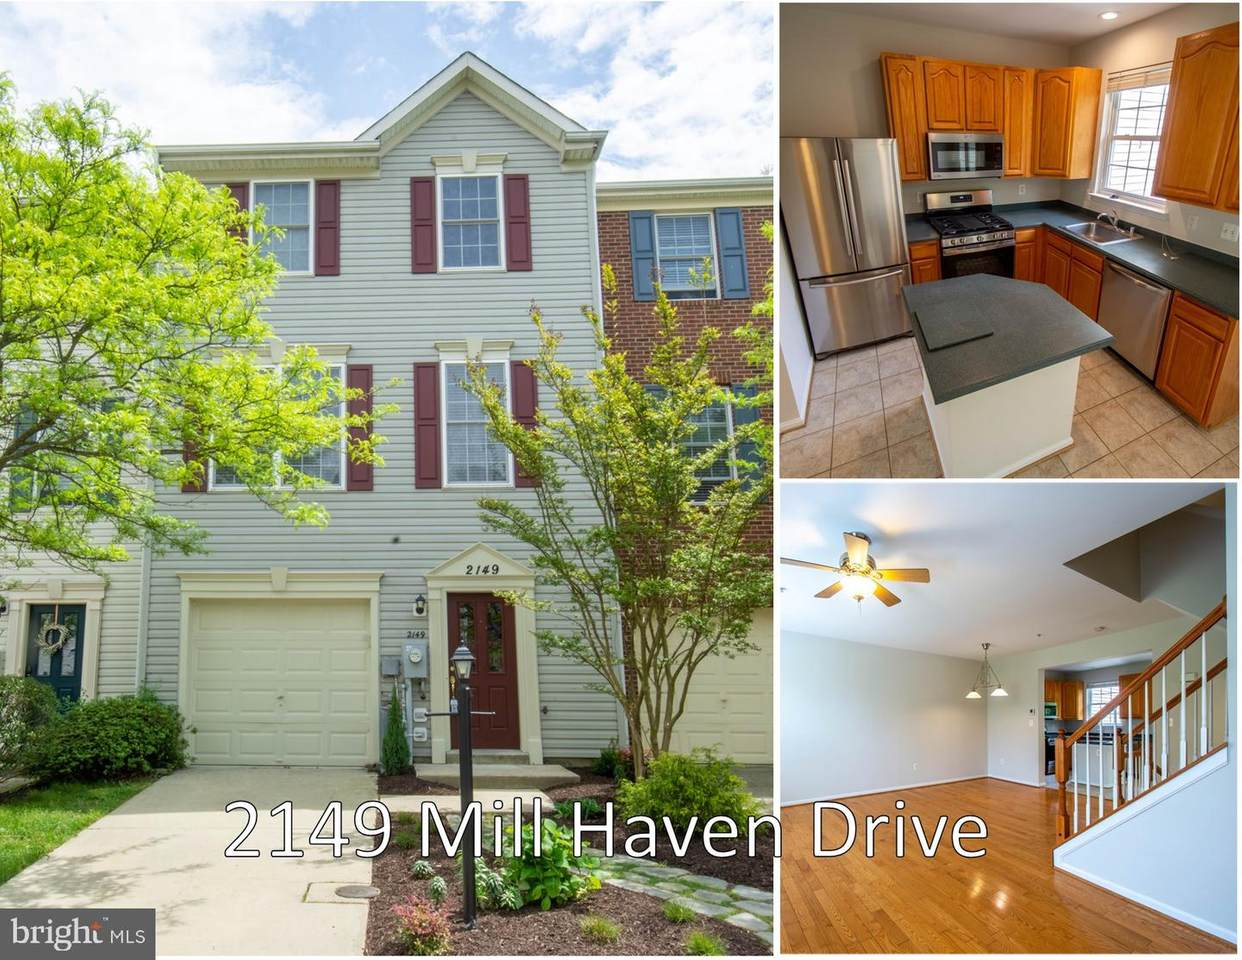 2149 Millhaven Drive - Photo 1